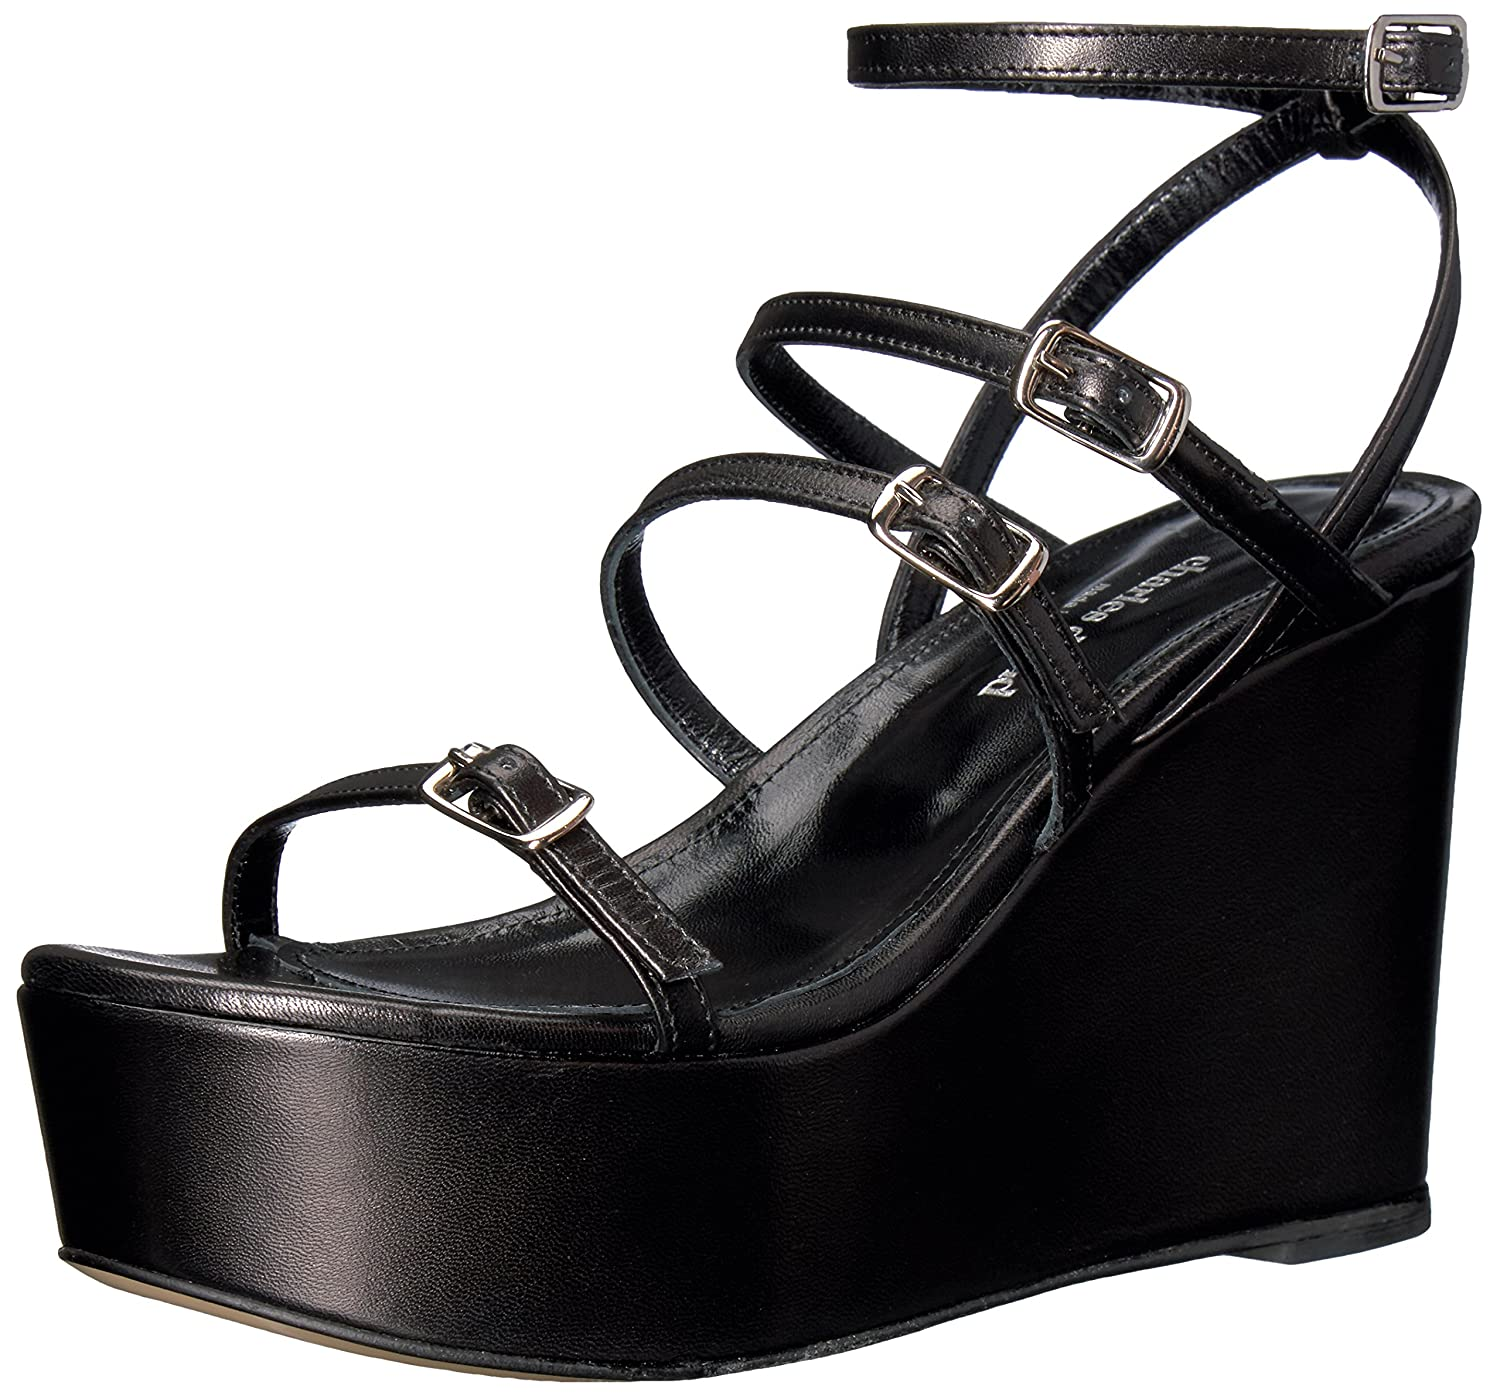 Charles David Women's Penelope Platform Dress Sandal B01M2CRMHM 10 B(M) US|Black